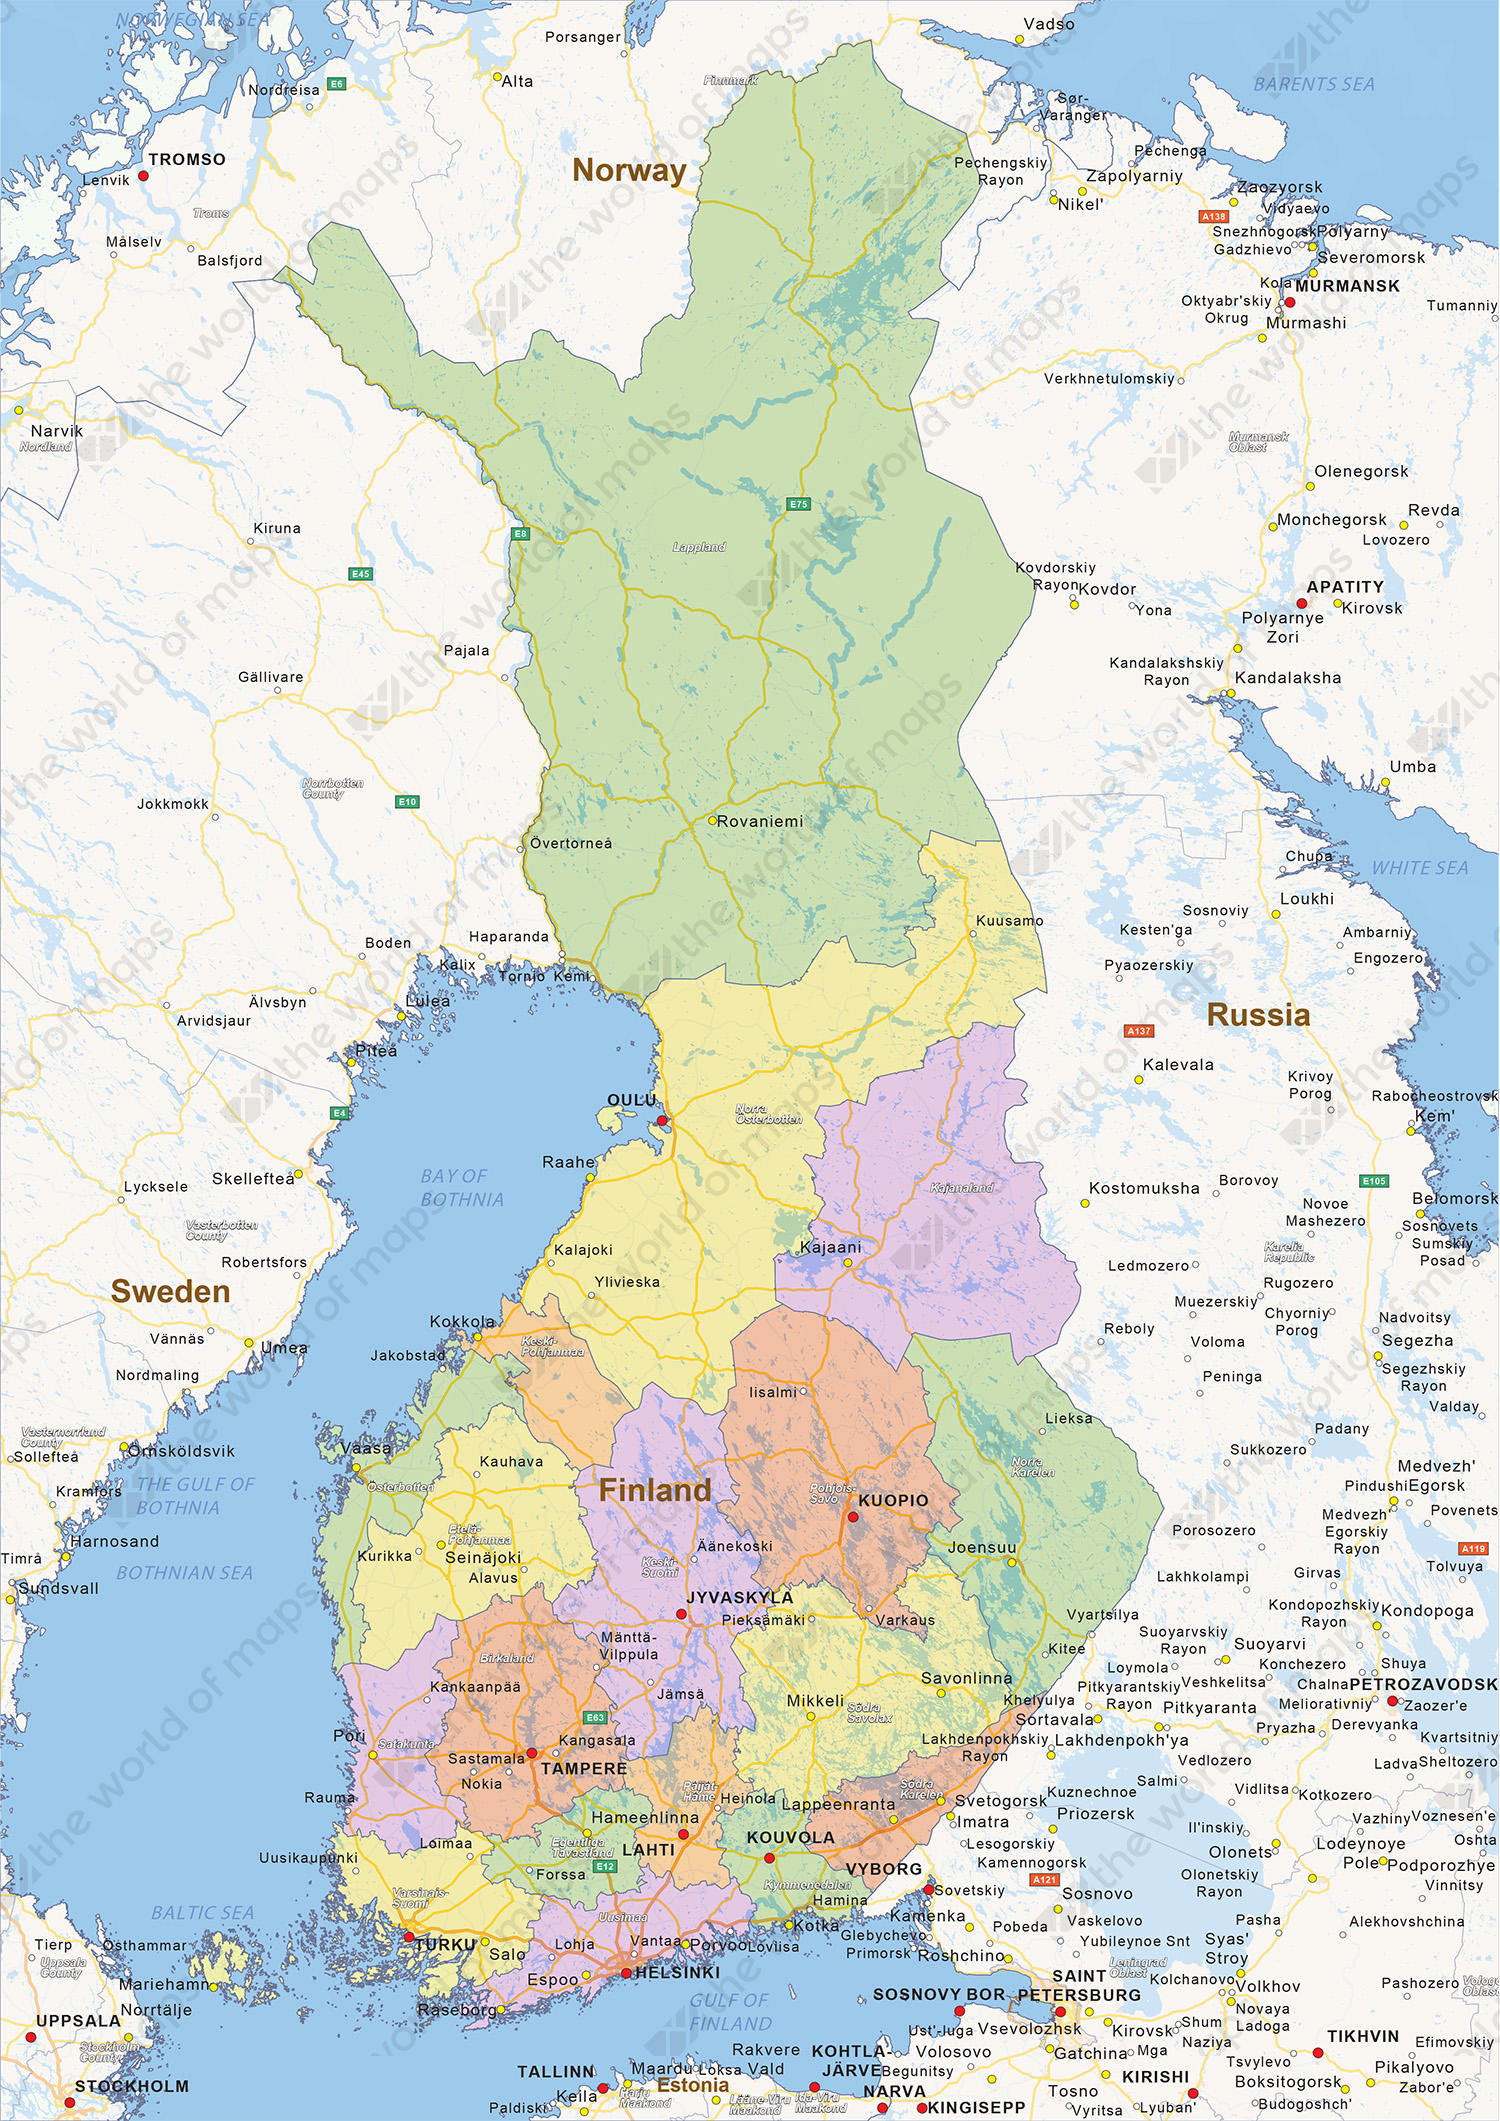 Digital political map of Finland 1432 The World of Mapscom